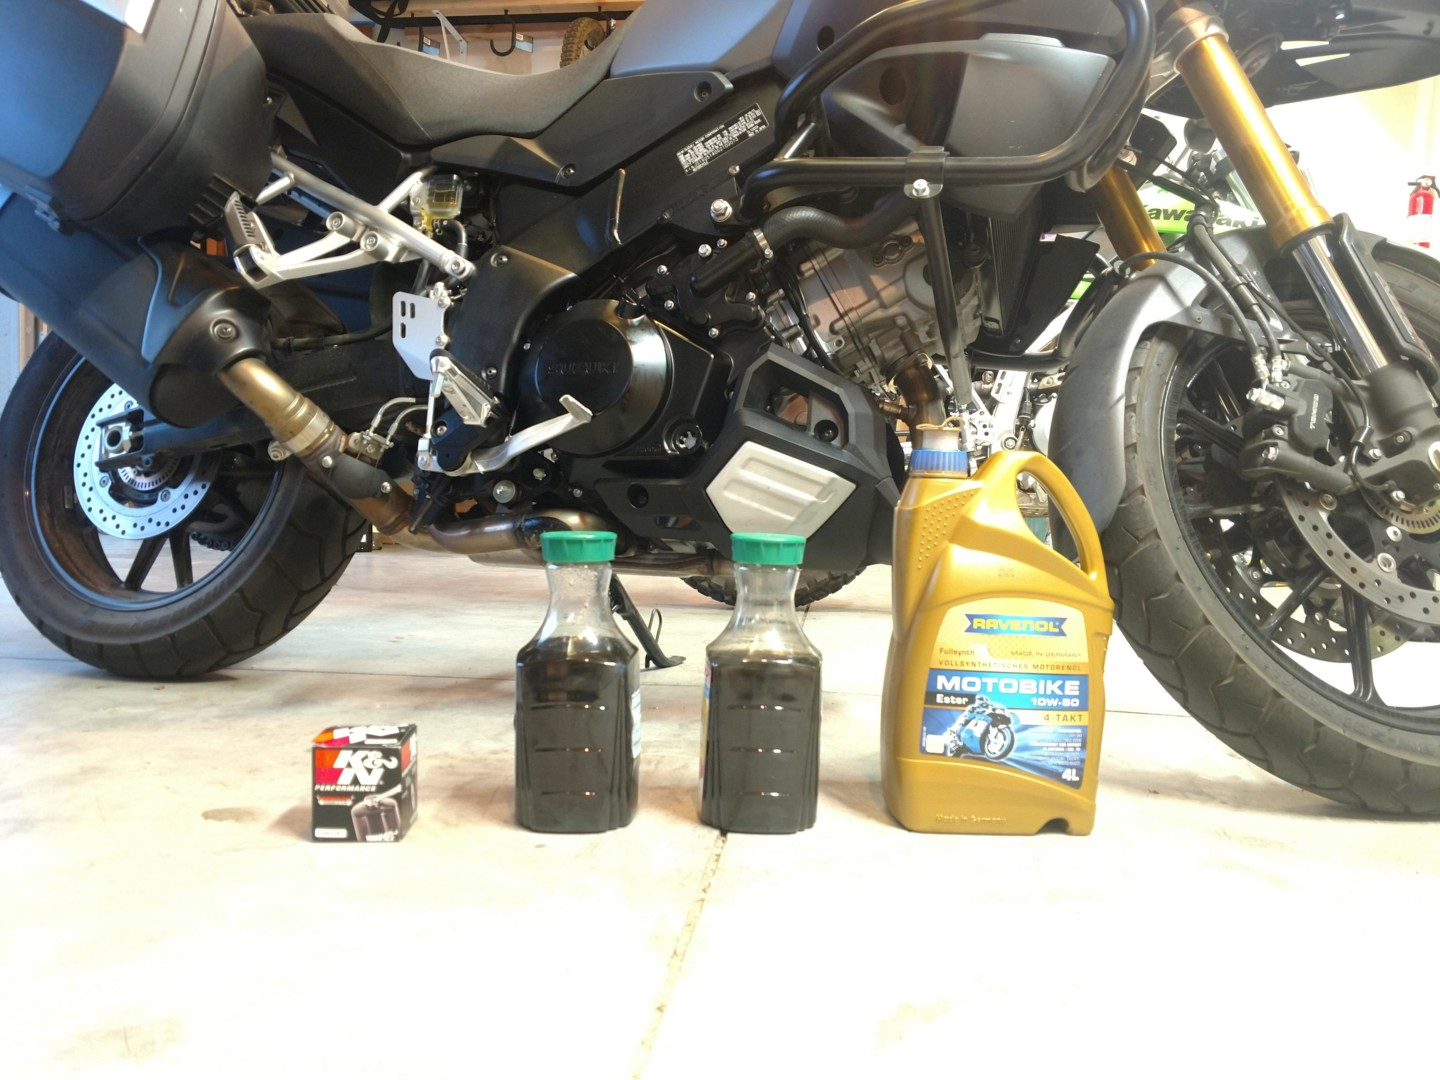 Nuts And Bolts Near Me >> 2016 Suzuki V-Strom DL1000 - First Oil Change, Filter Replacement, and Maintenance Guide ...